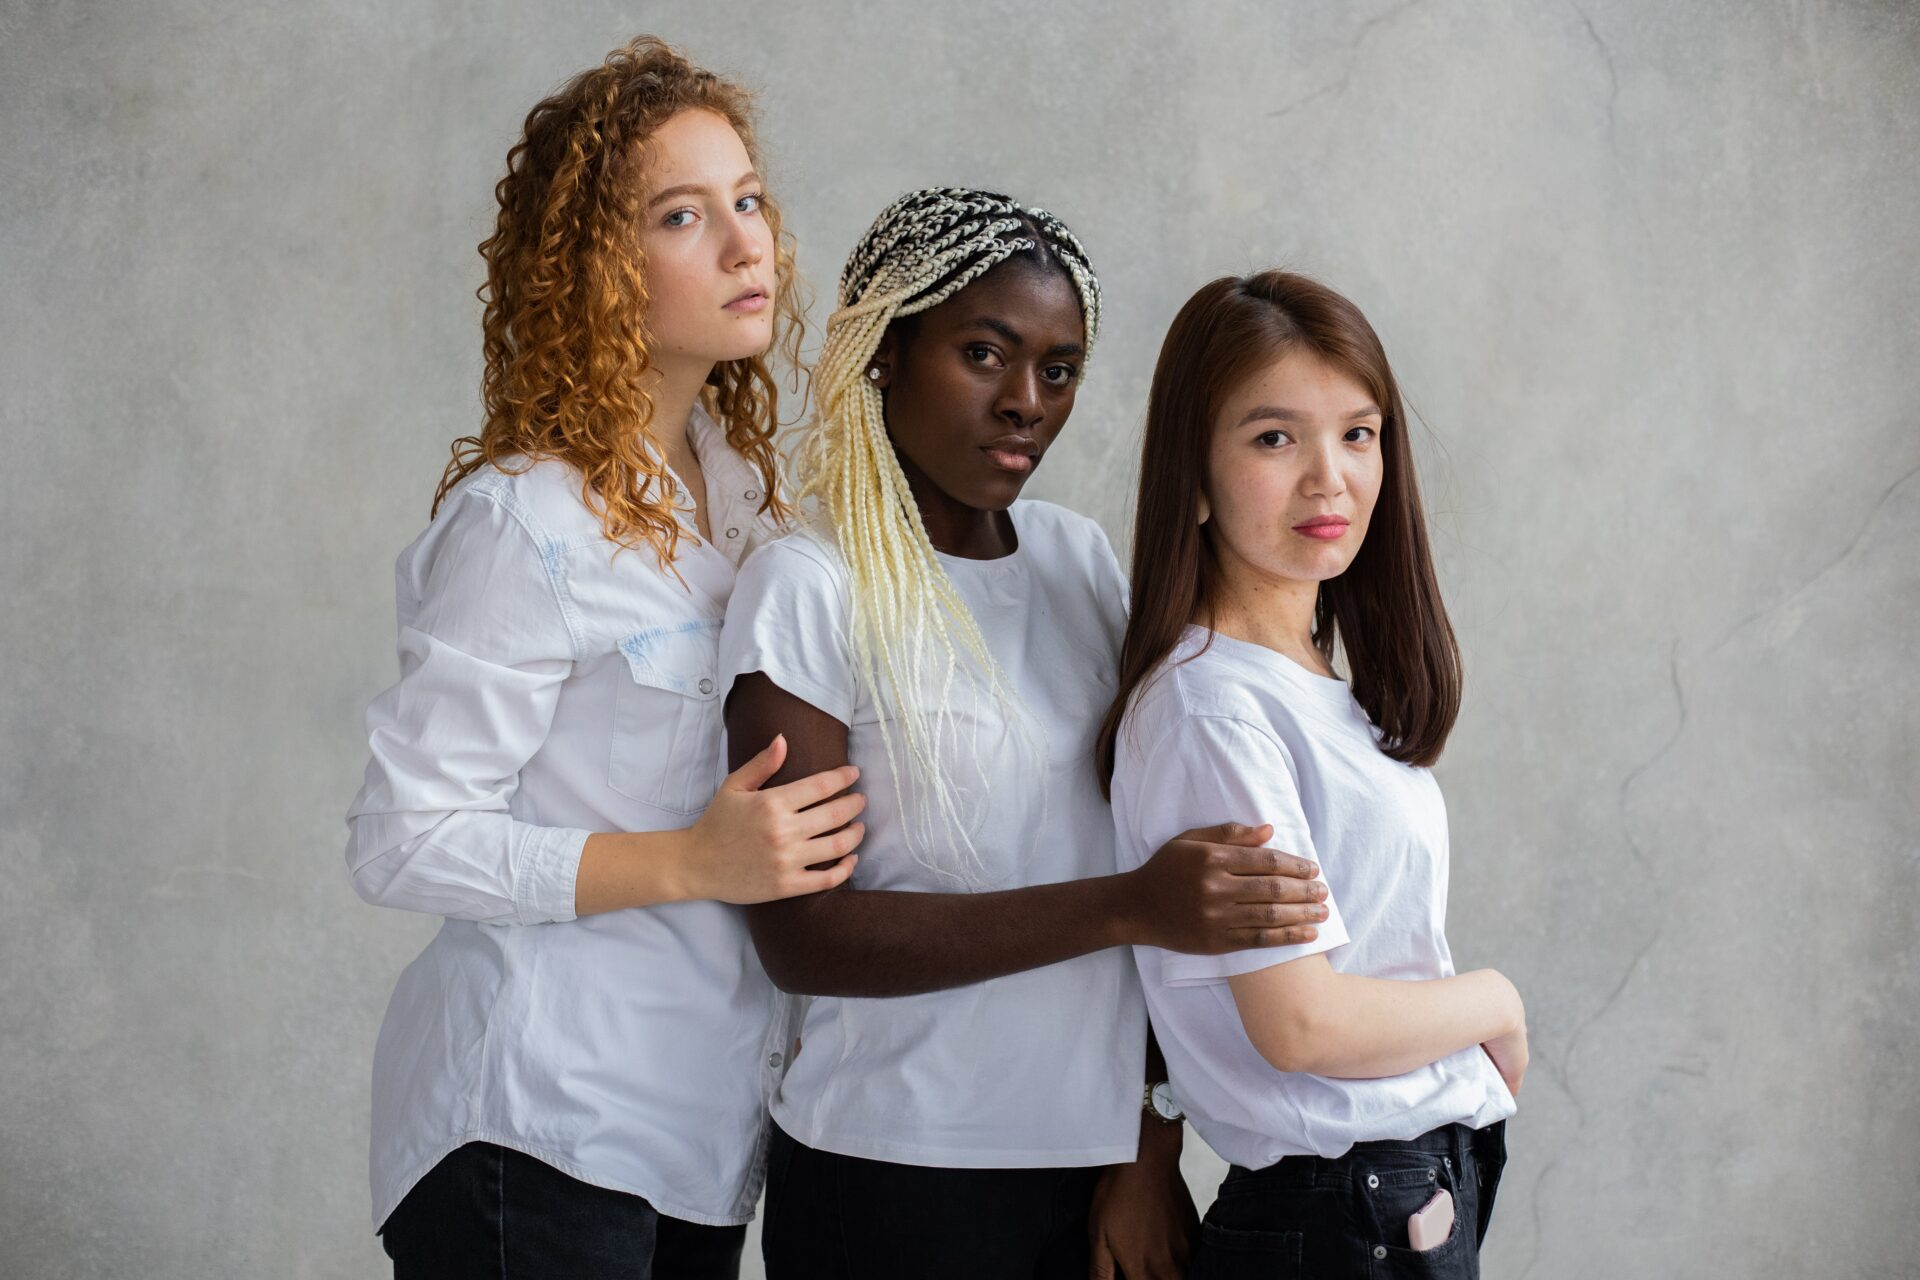 three women from different backgrounds and cultures, standing in a row